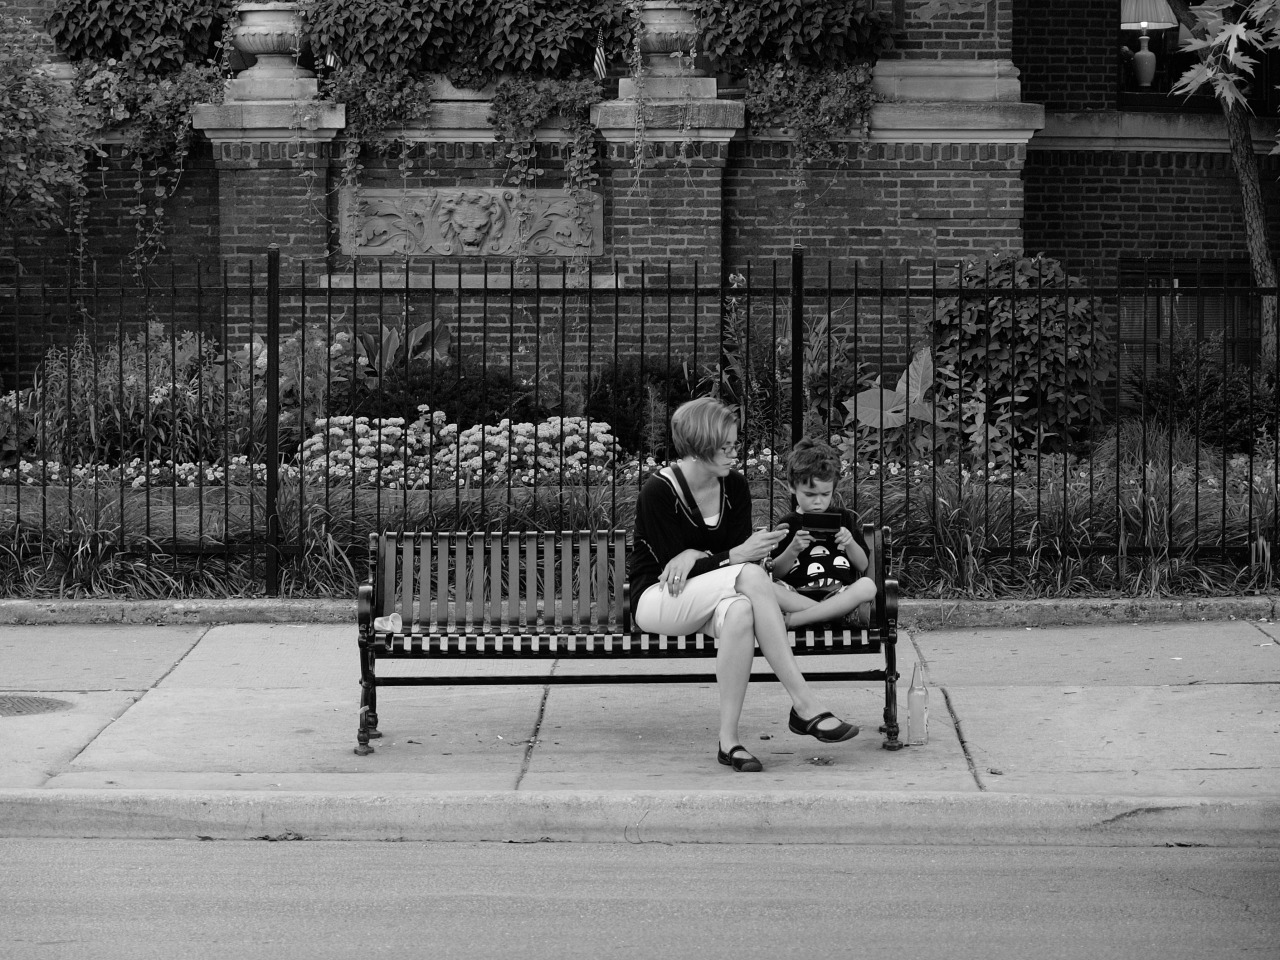 Mother and Son at Bus Stop - July 2010 - Uptown, Chicago, IL